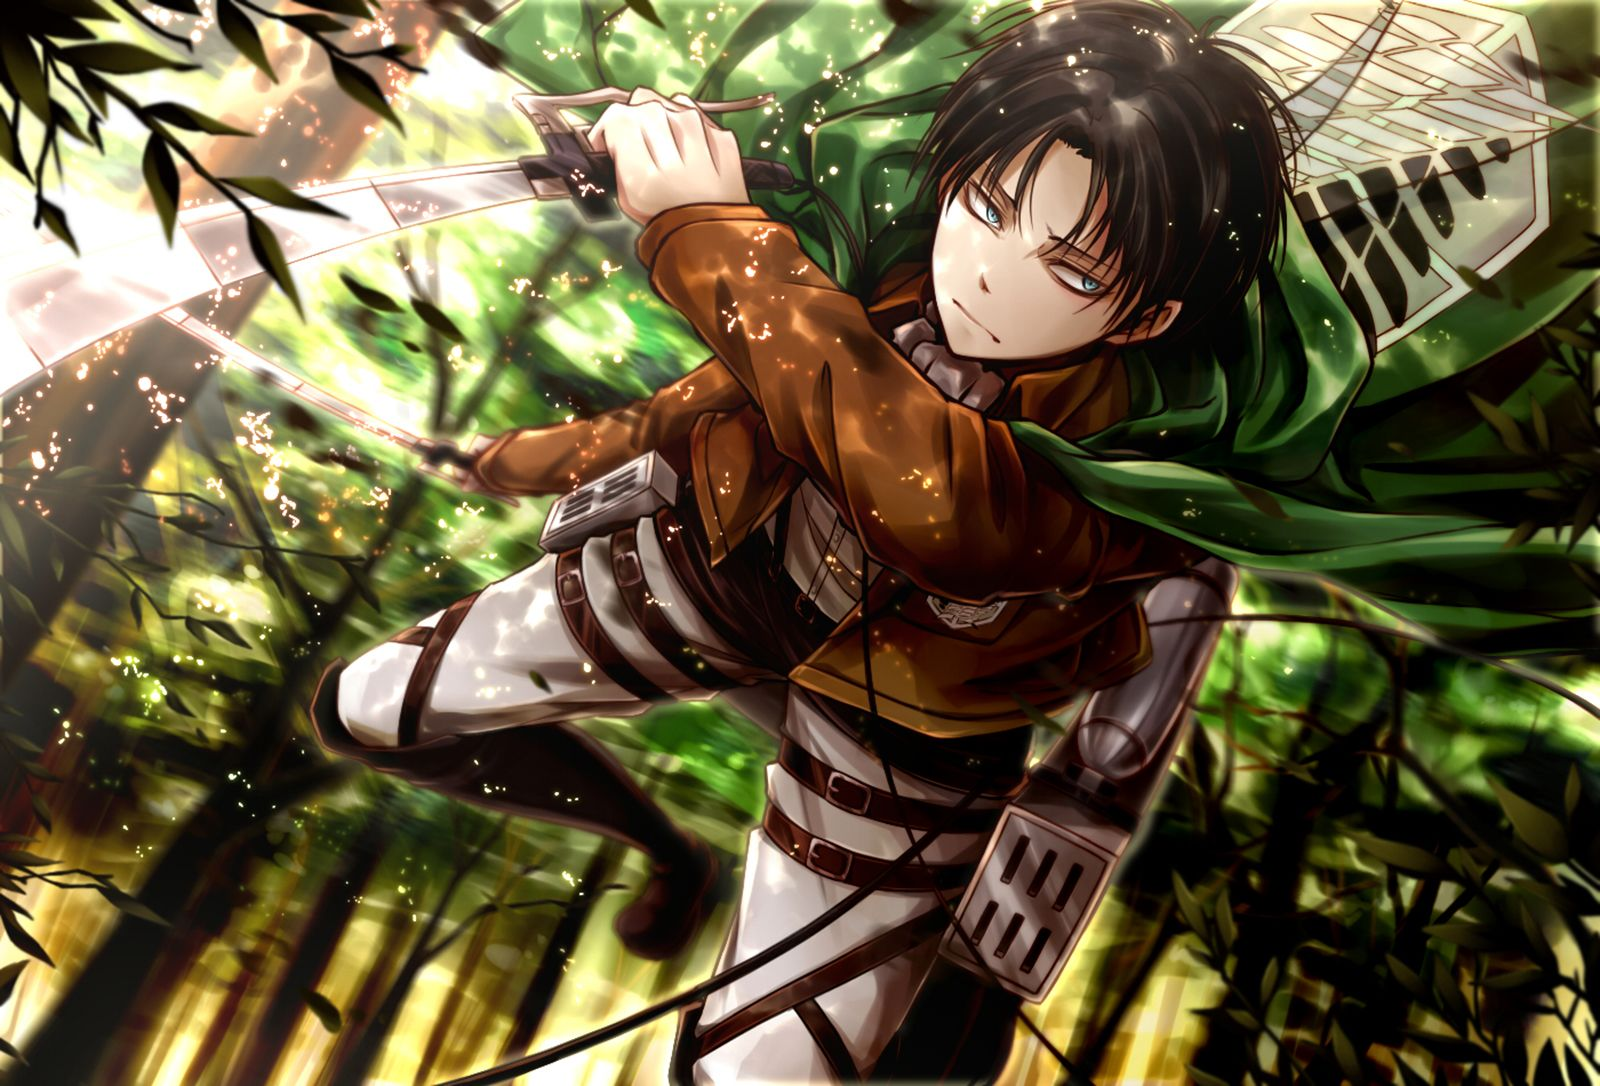 Anime Attack On Titan Levi Ackerman Shingeki No Kyojin